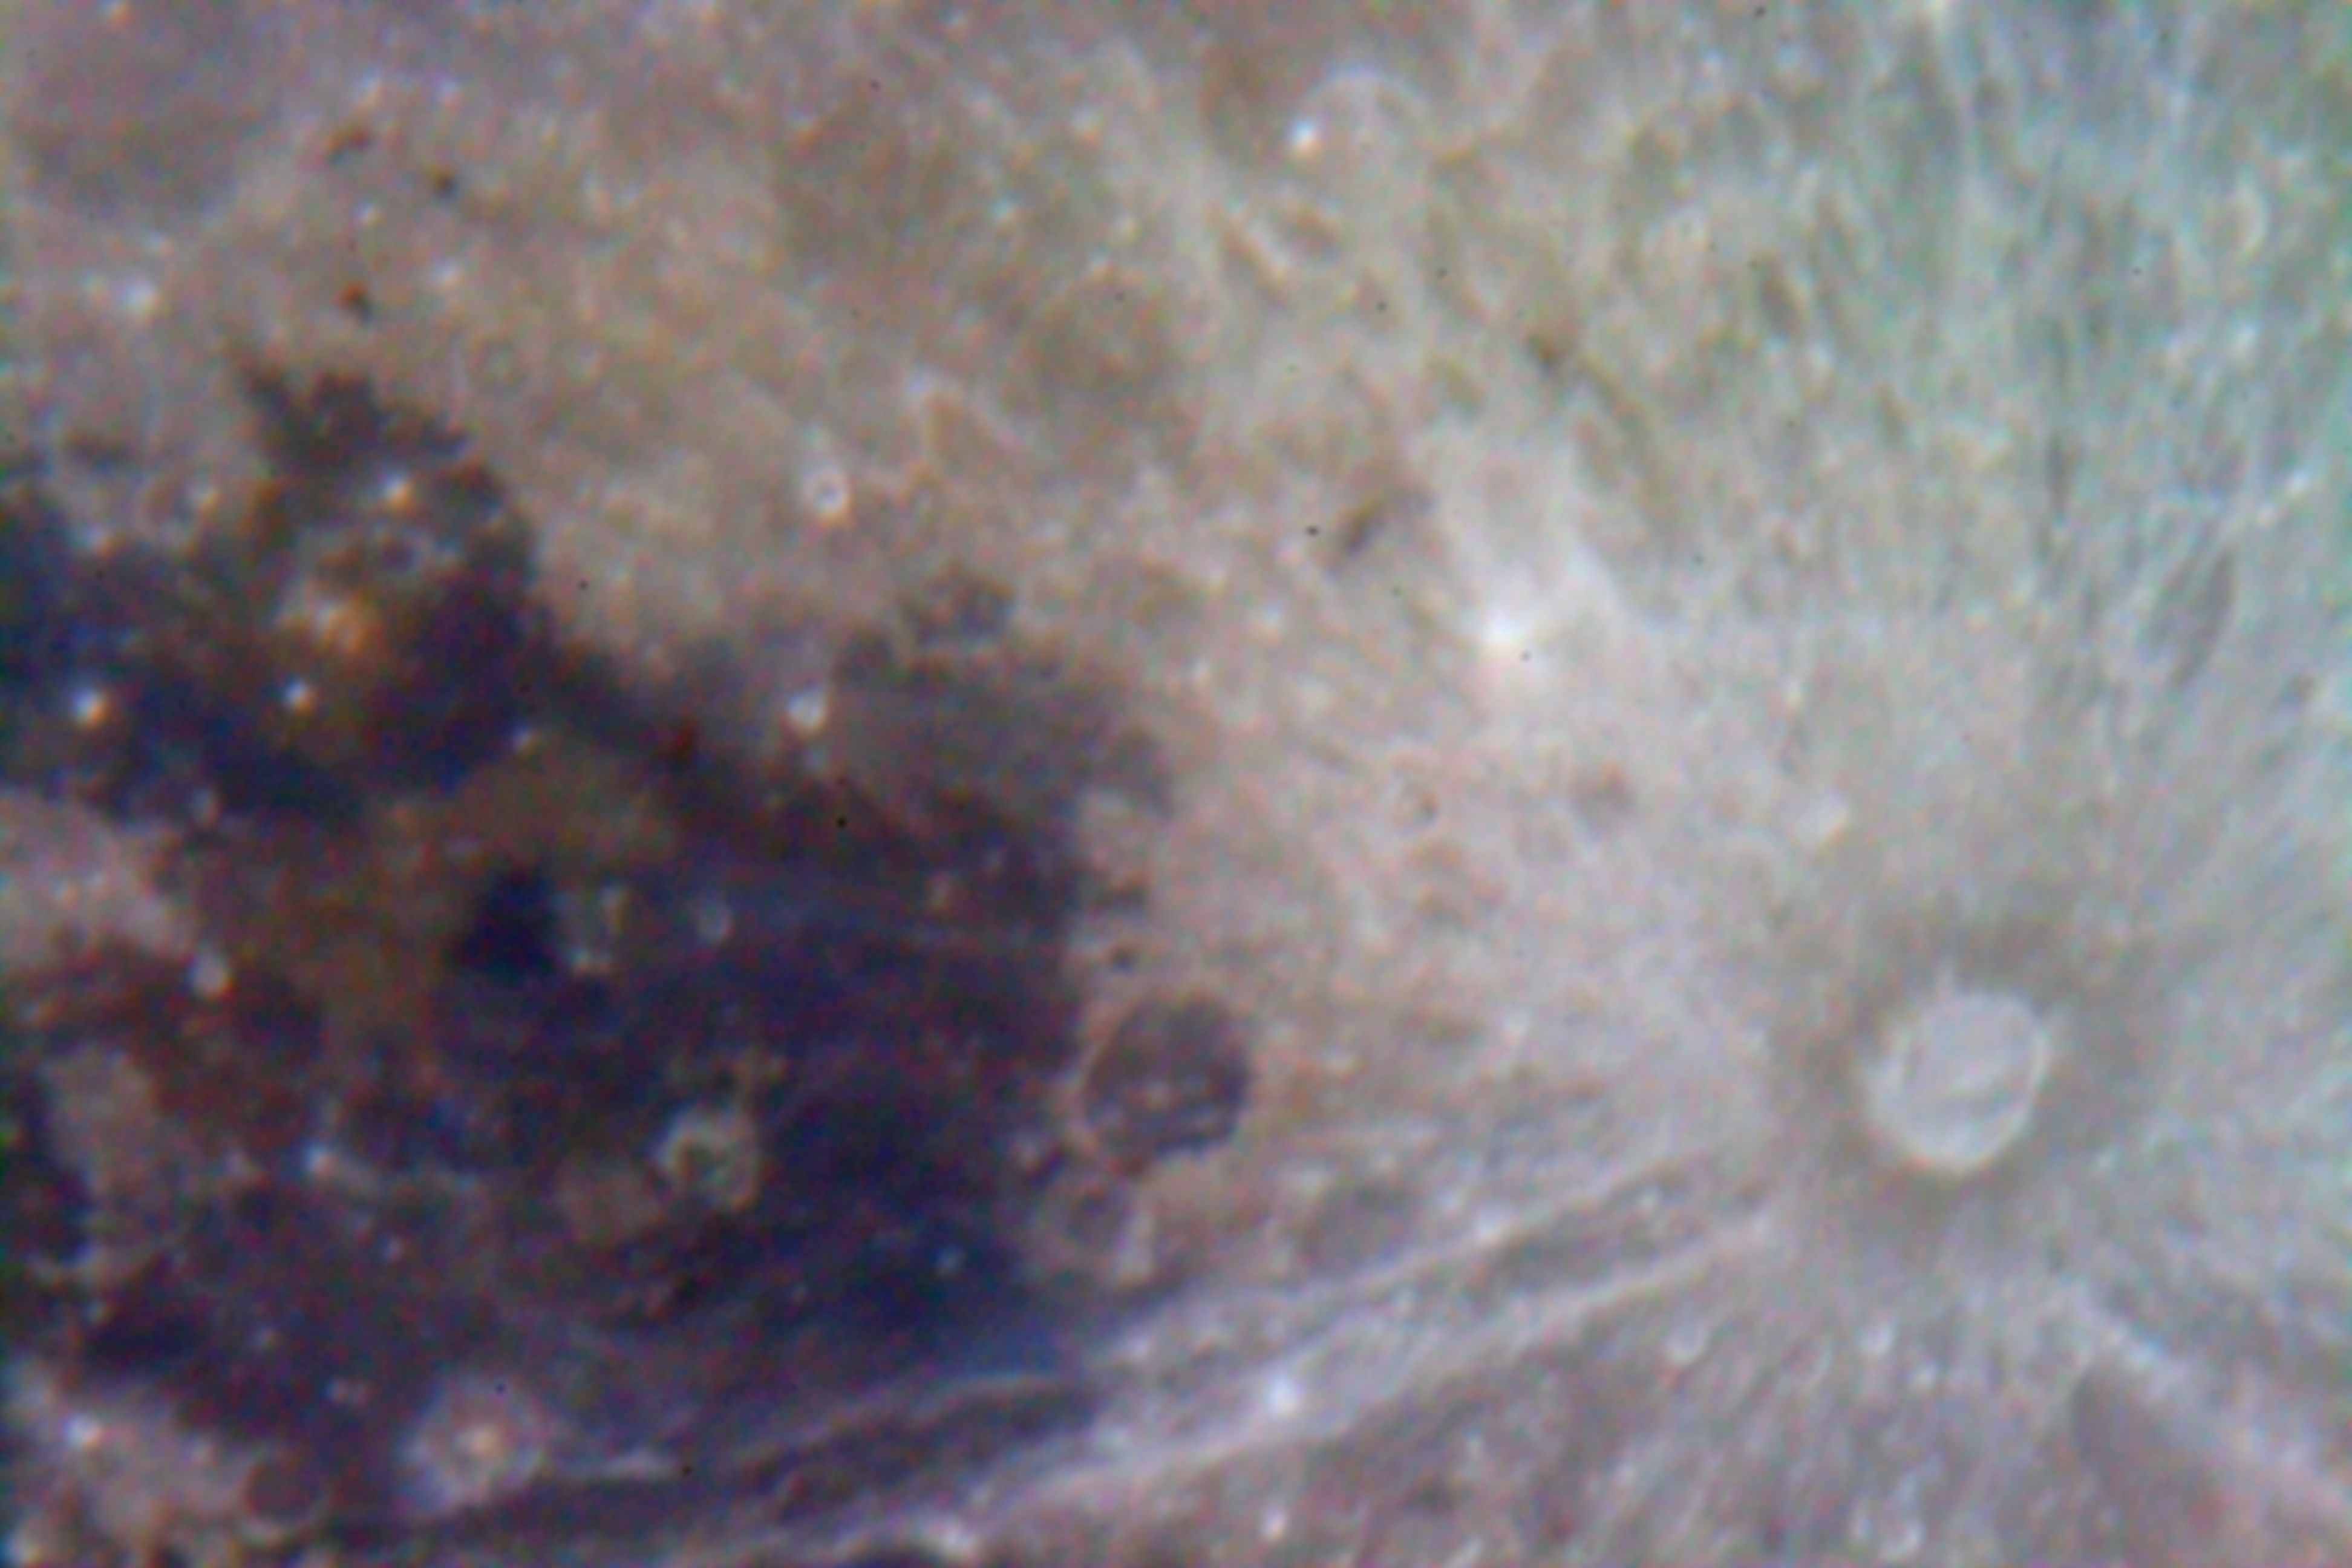 Crater Tycho (Enhanced Color)